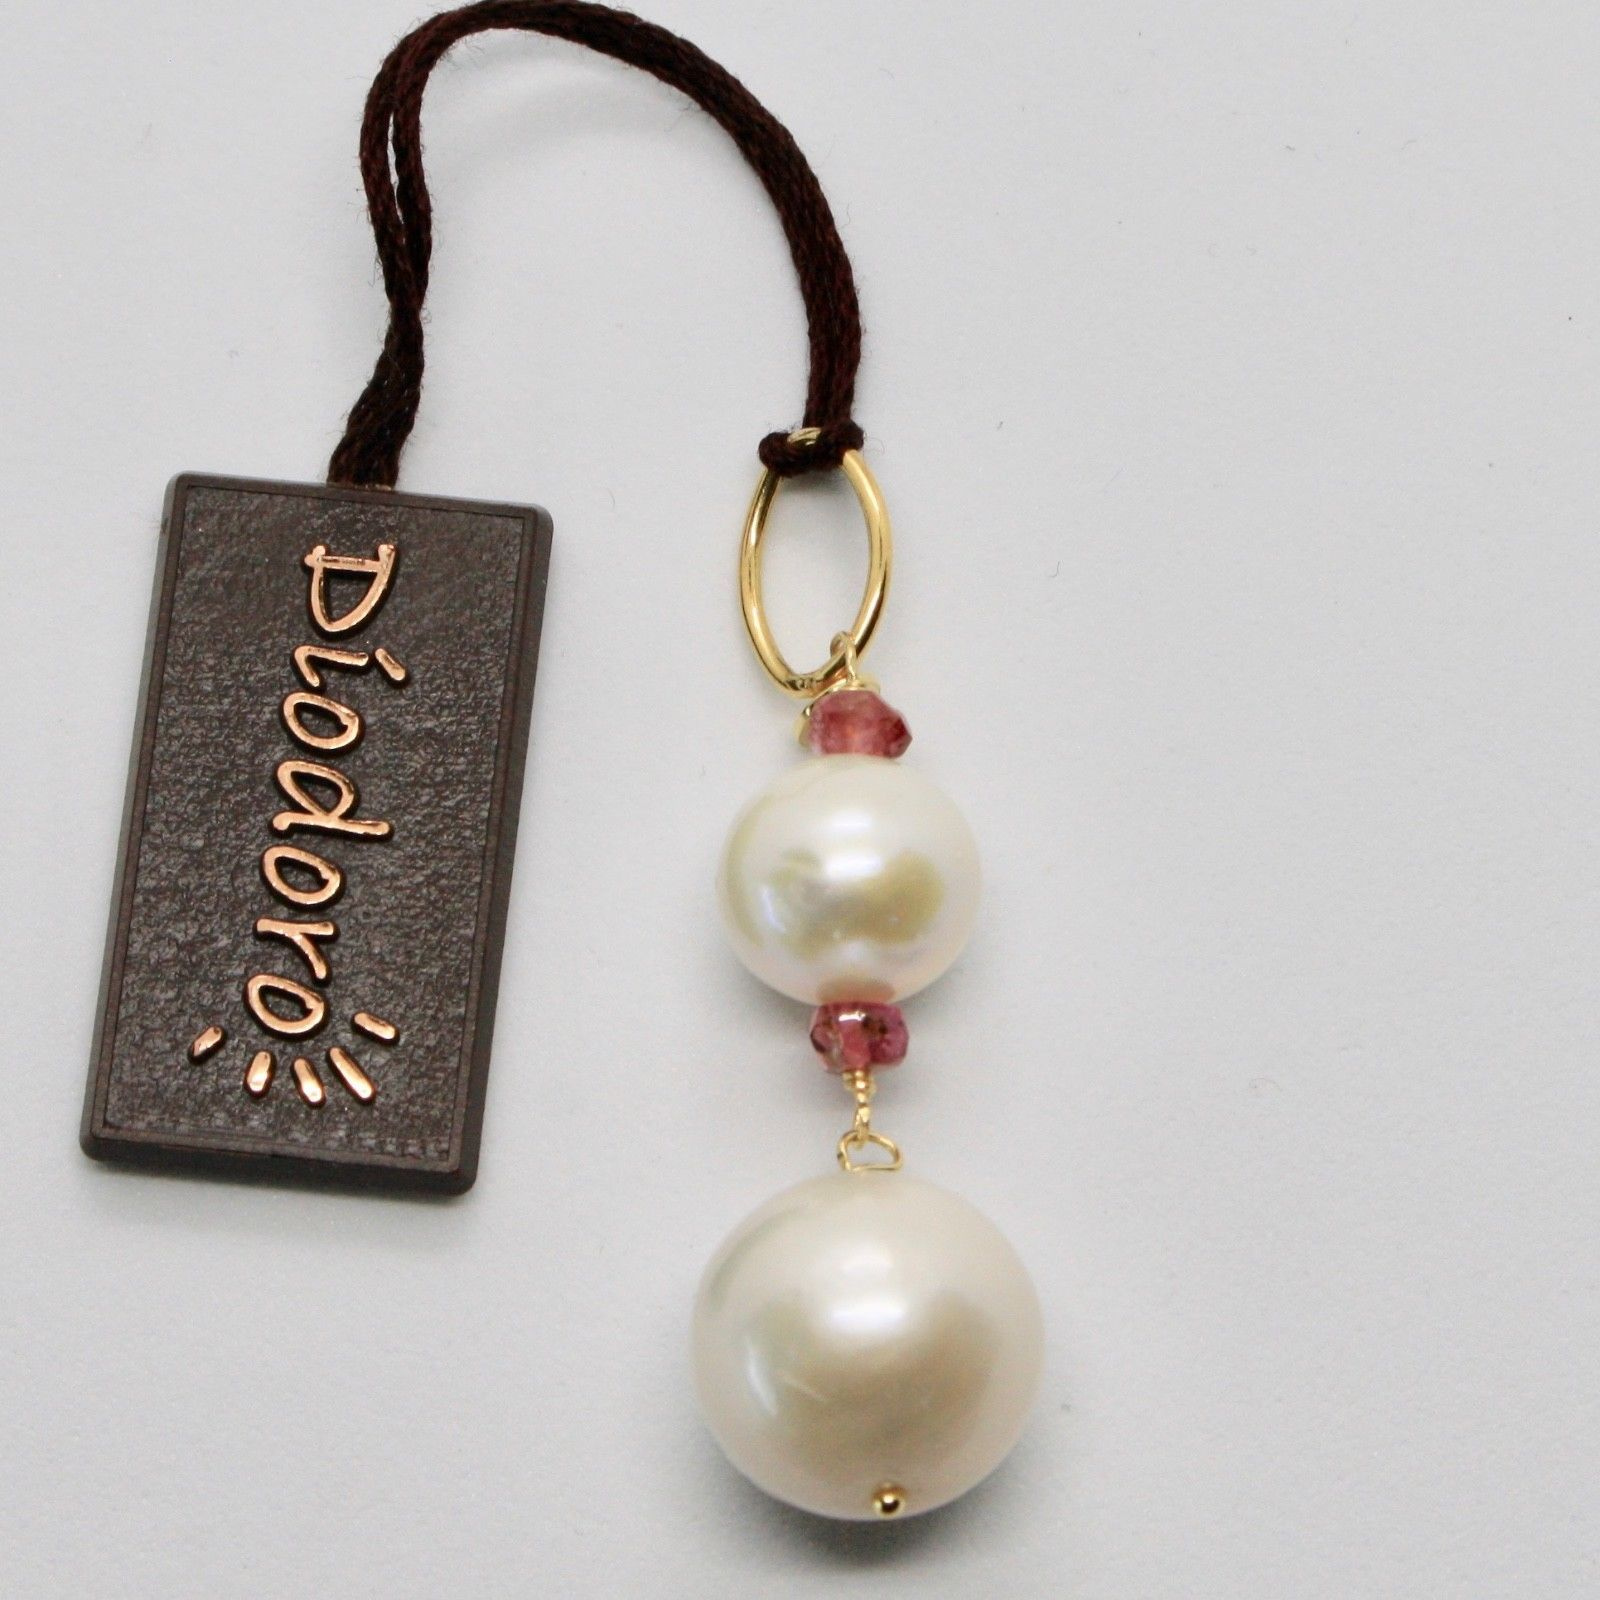 PENDANT YELLOW GOLD 18K WITH WHITE PEARLS FRESH WATER AND TOURMALINE PINK